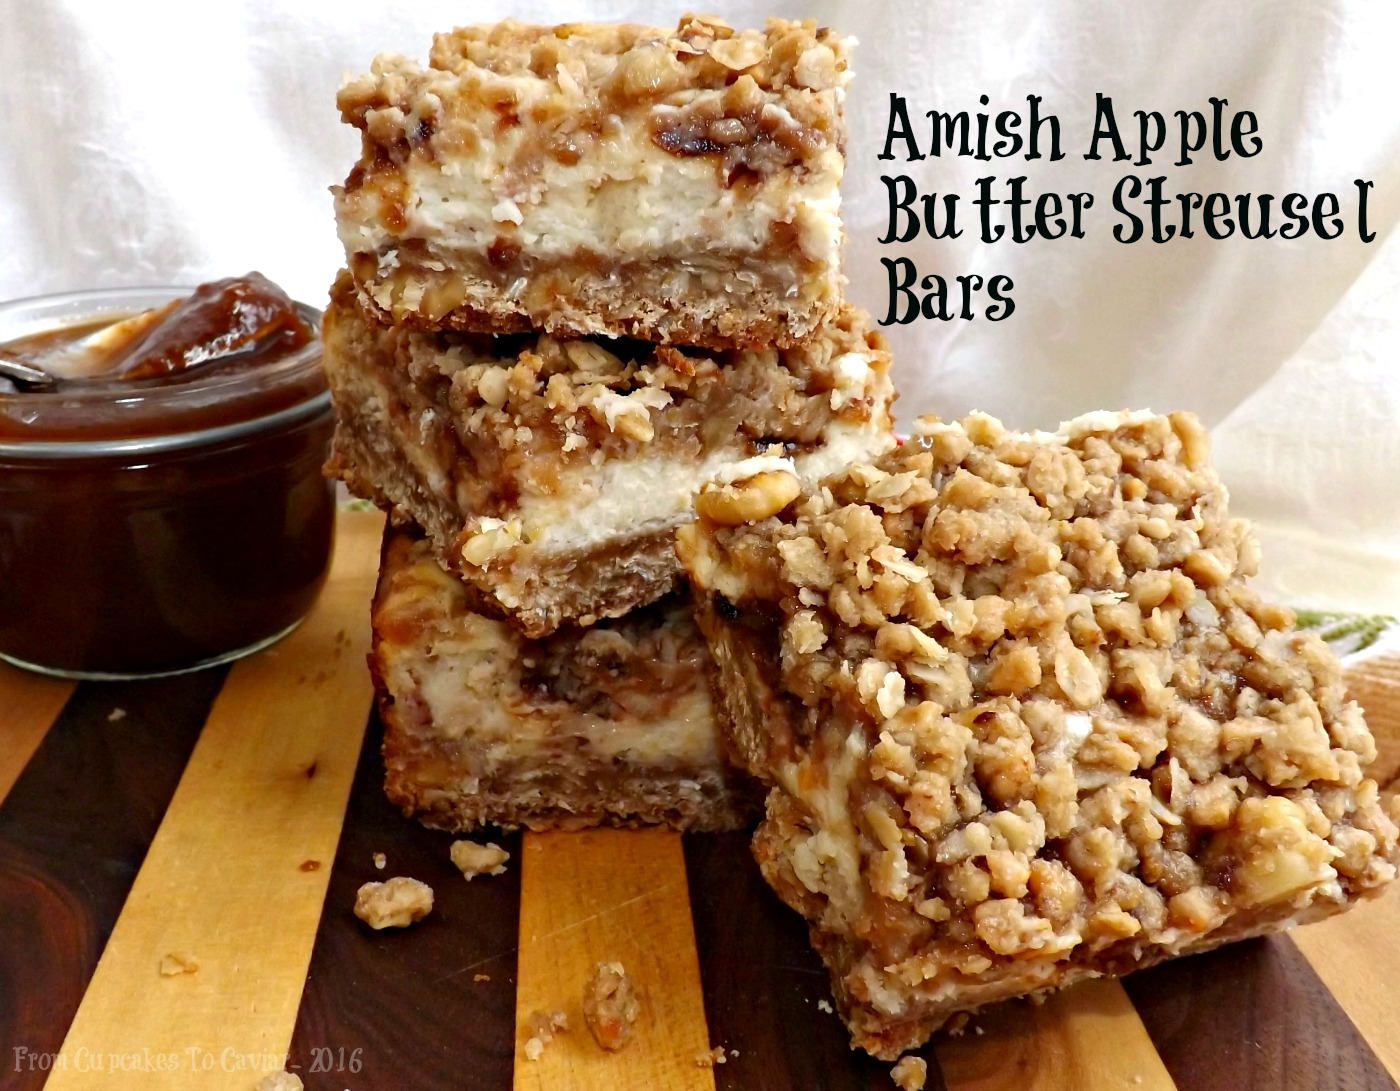 Amish Apple Butter Streusel Bars